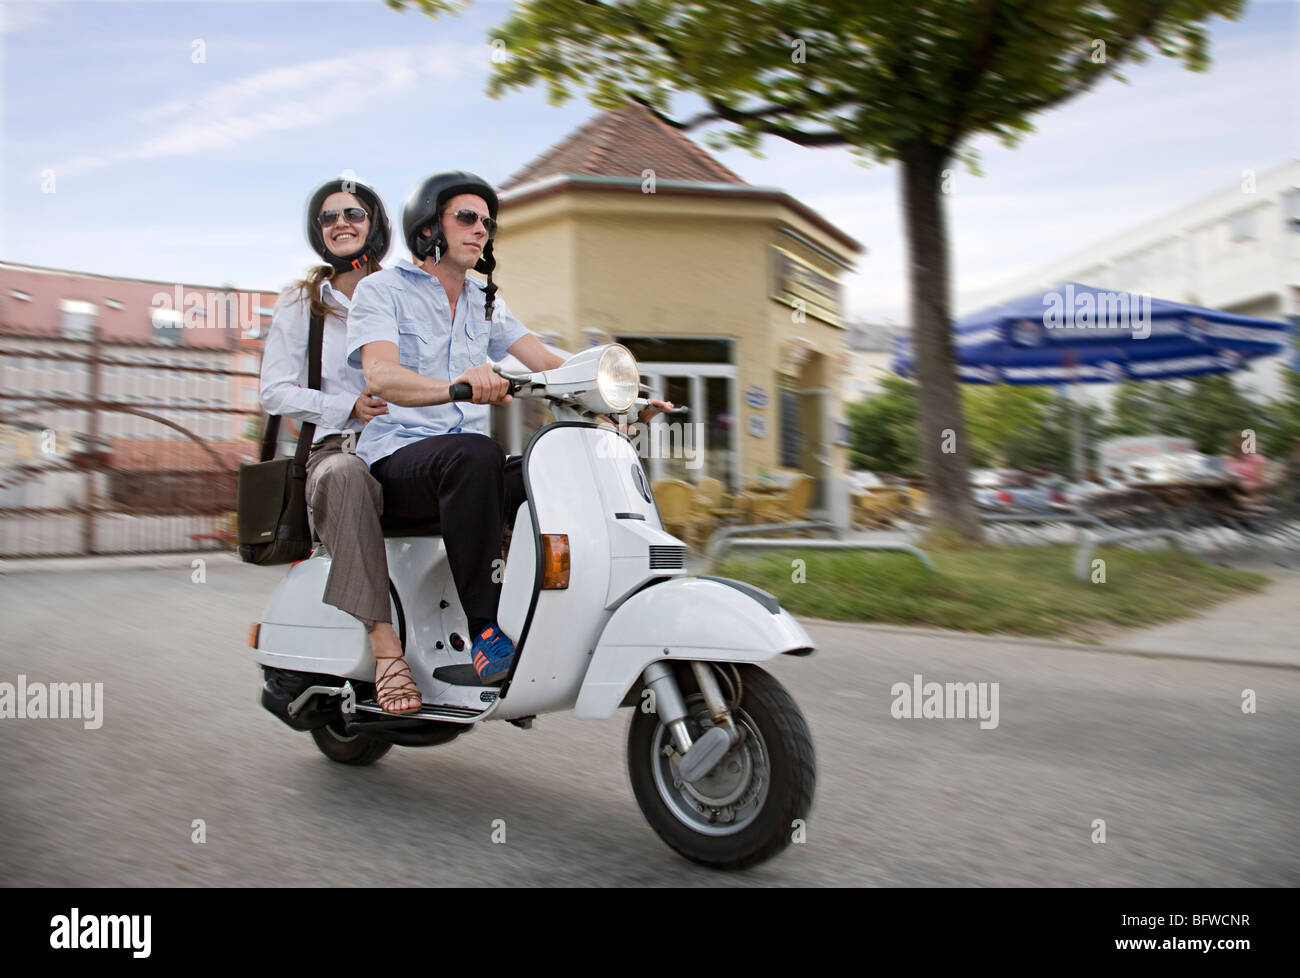 couple on scooter - Stock Image